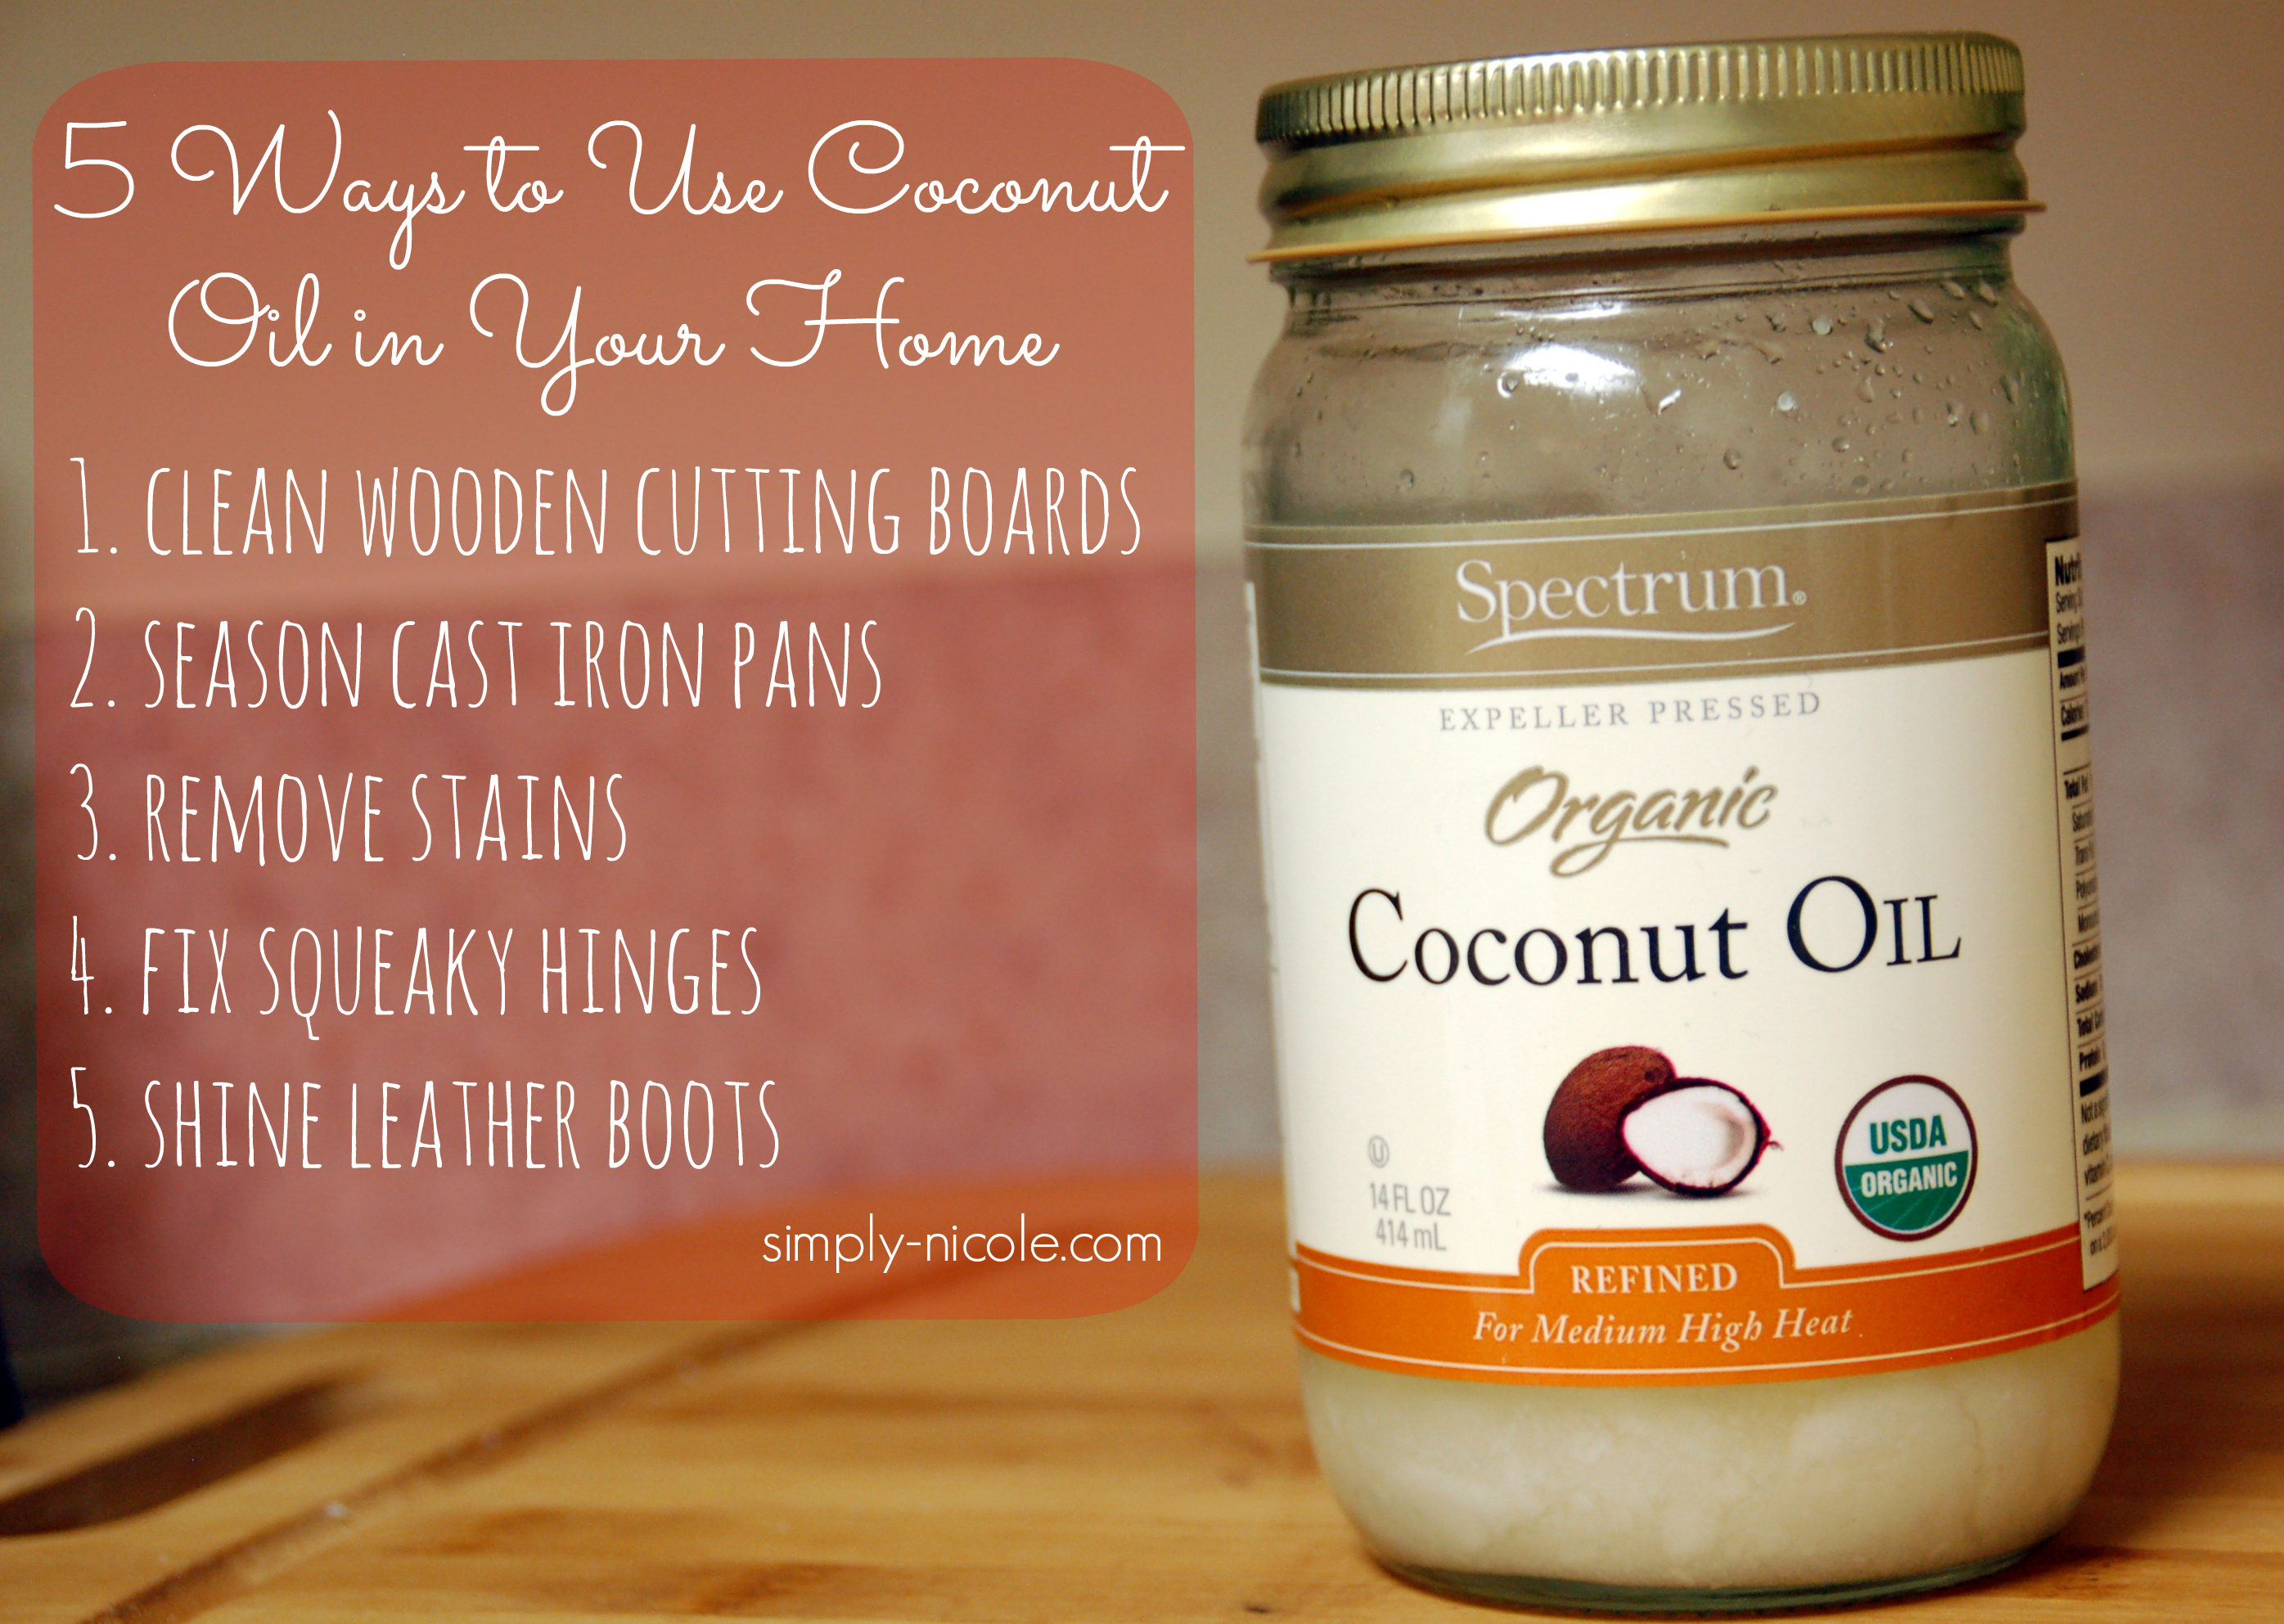 5 Ways to Use Coconut Oil in Your Home at simply-nicole.com